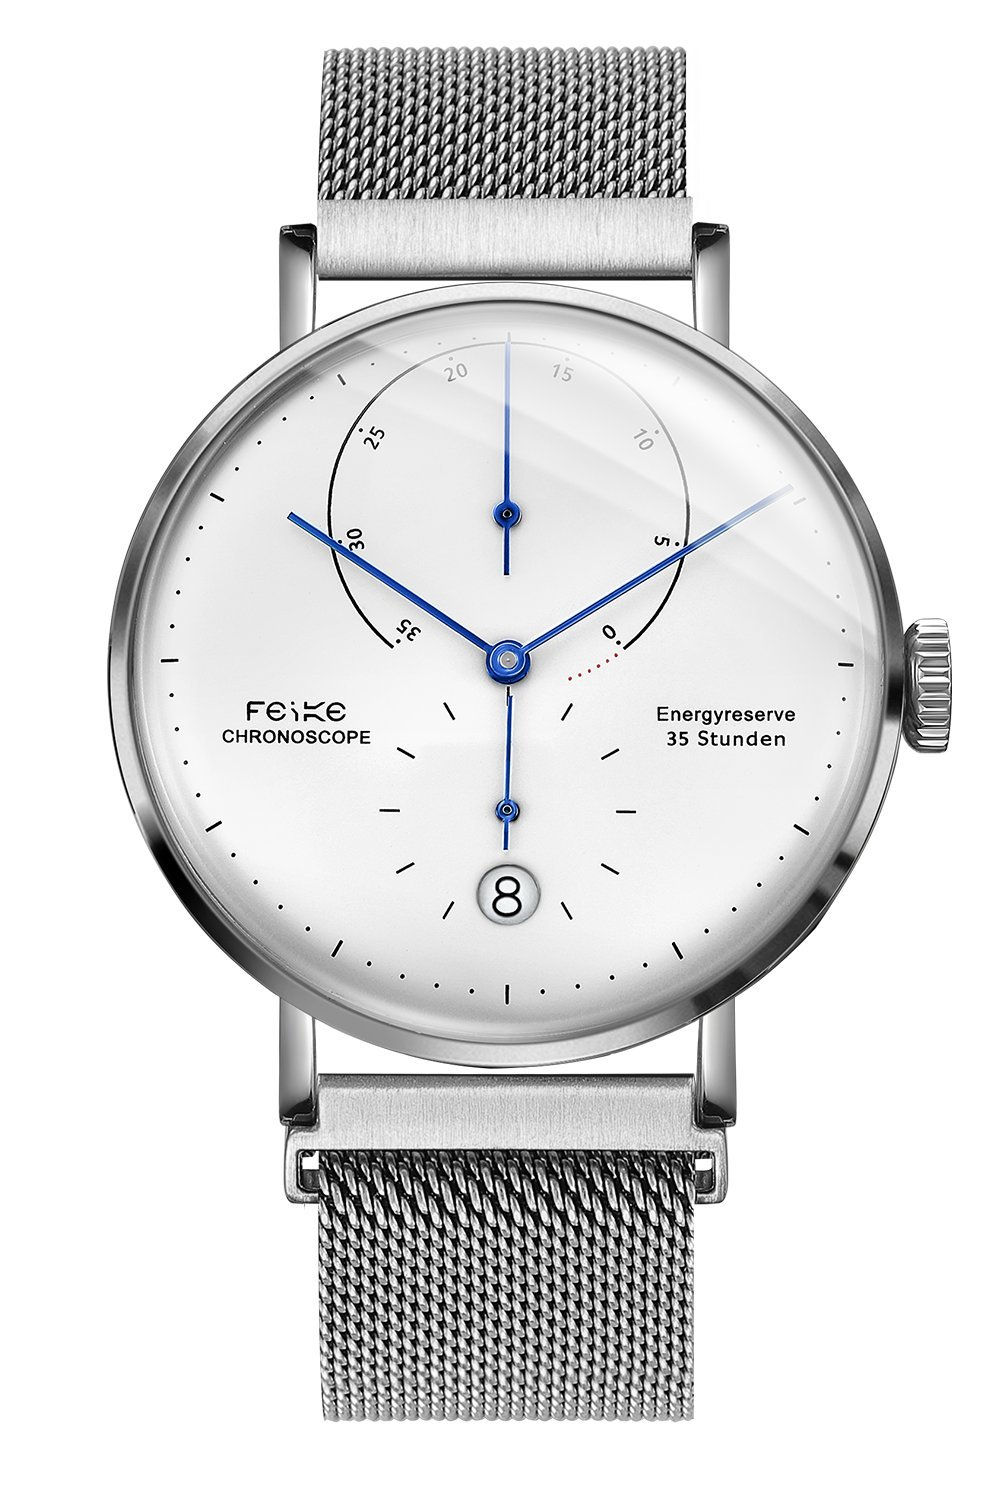 FEICE Men's Automatic Mechanical Stainless Steel Watch with Energy Display #FM202(Silver-2) …